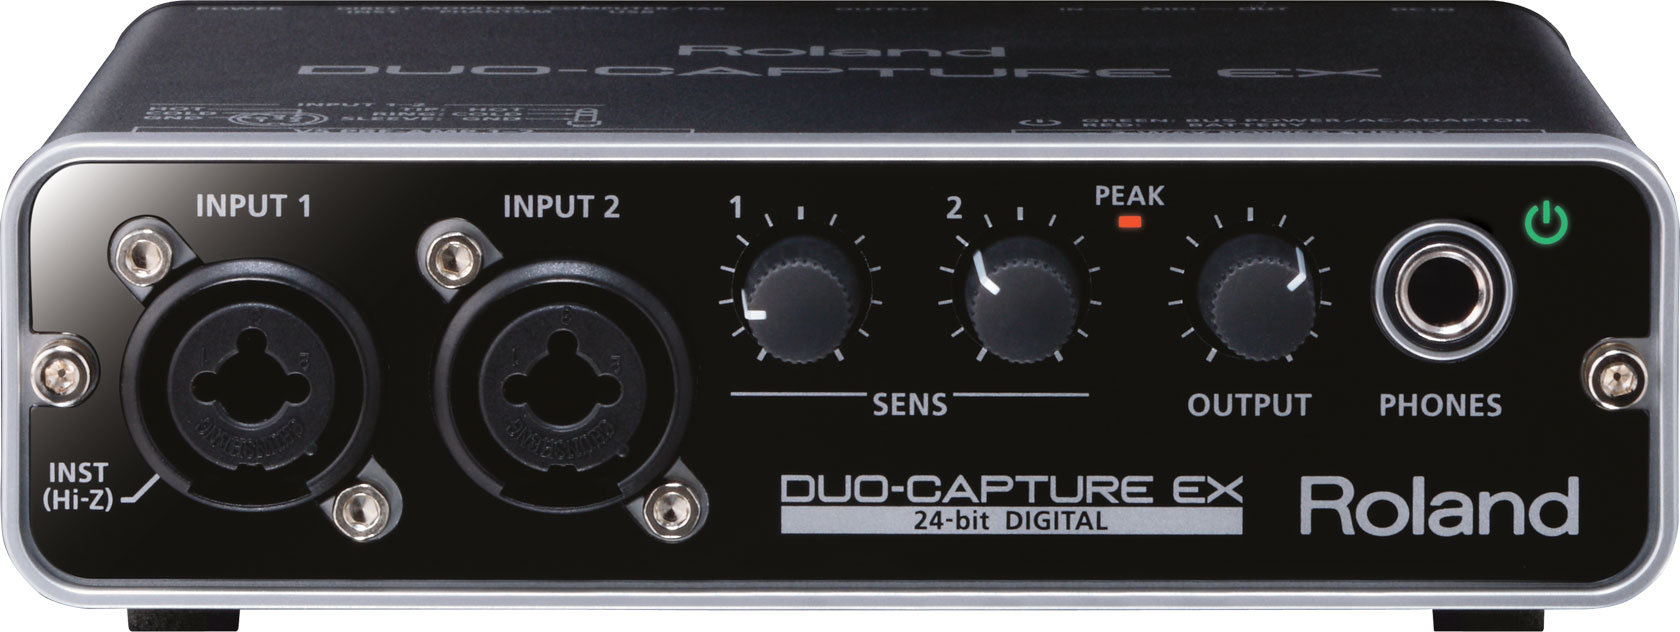 Roland Duo Capture Ex Usb Audio Interface